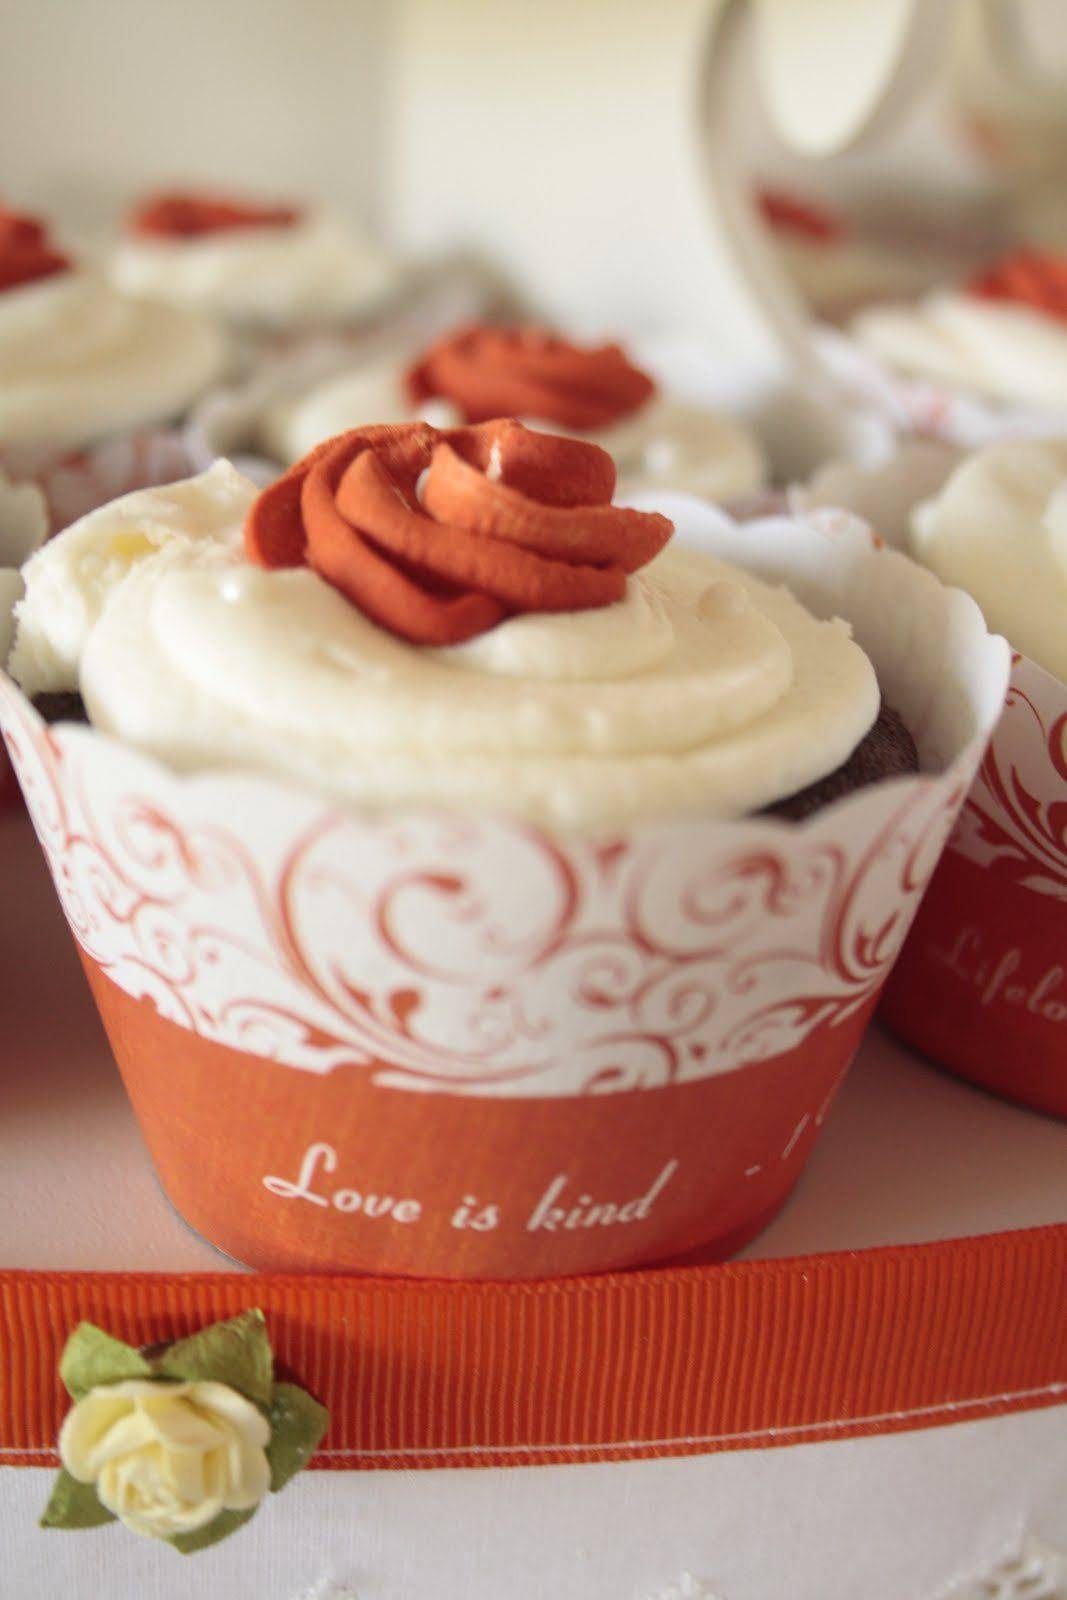 DIY cupcake wrapper - print it off with their names/date/monogram